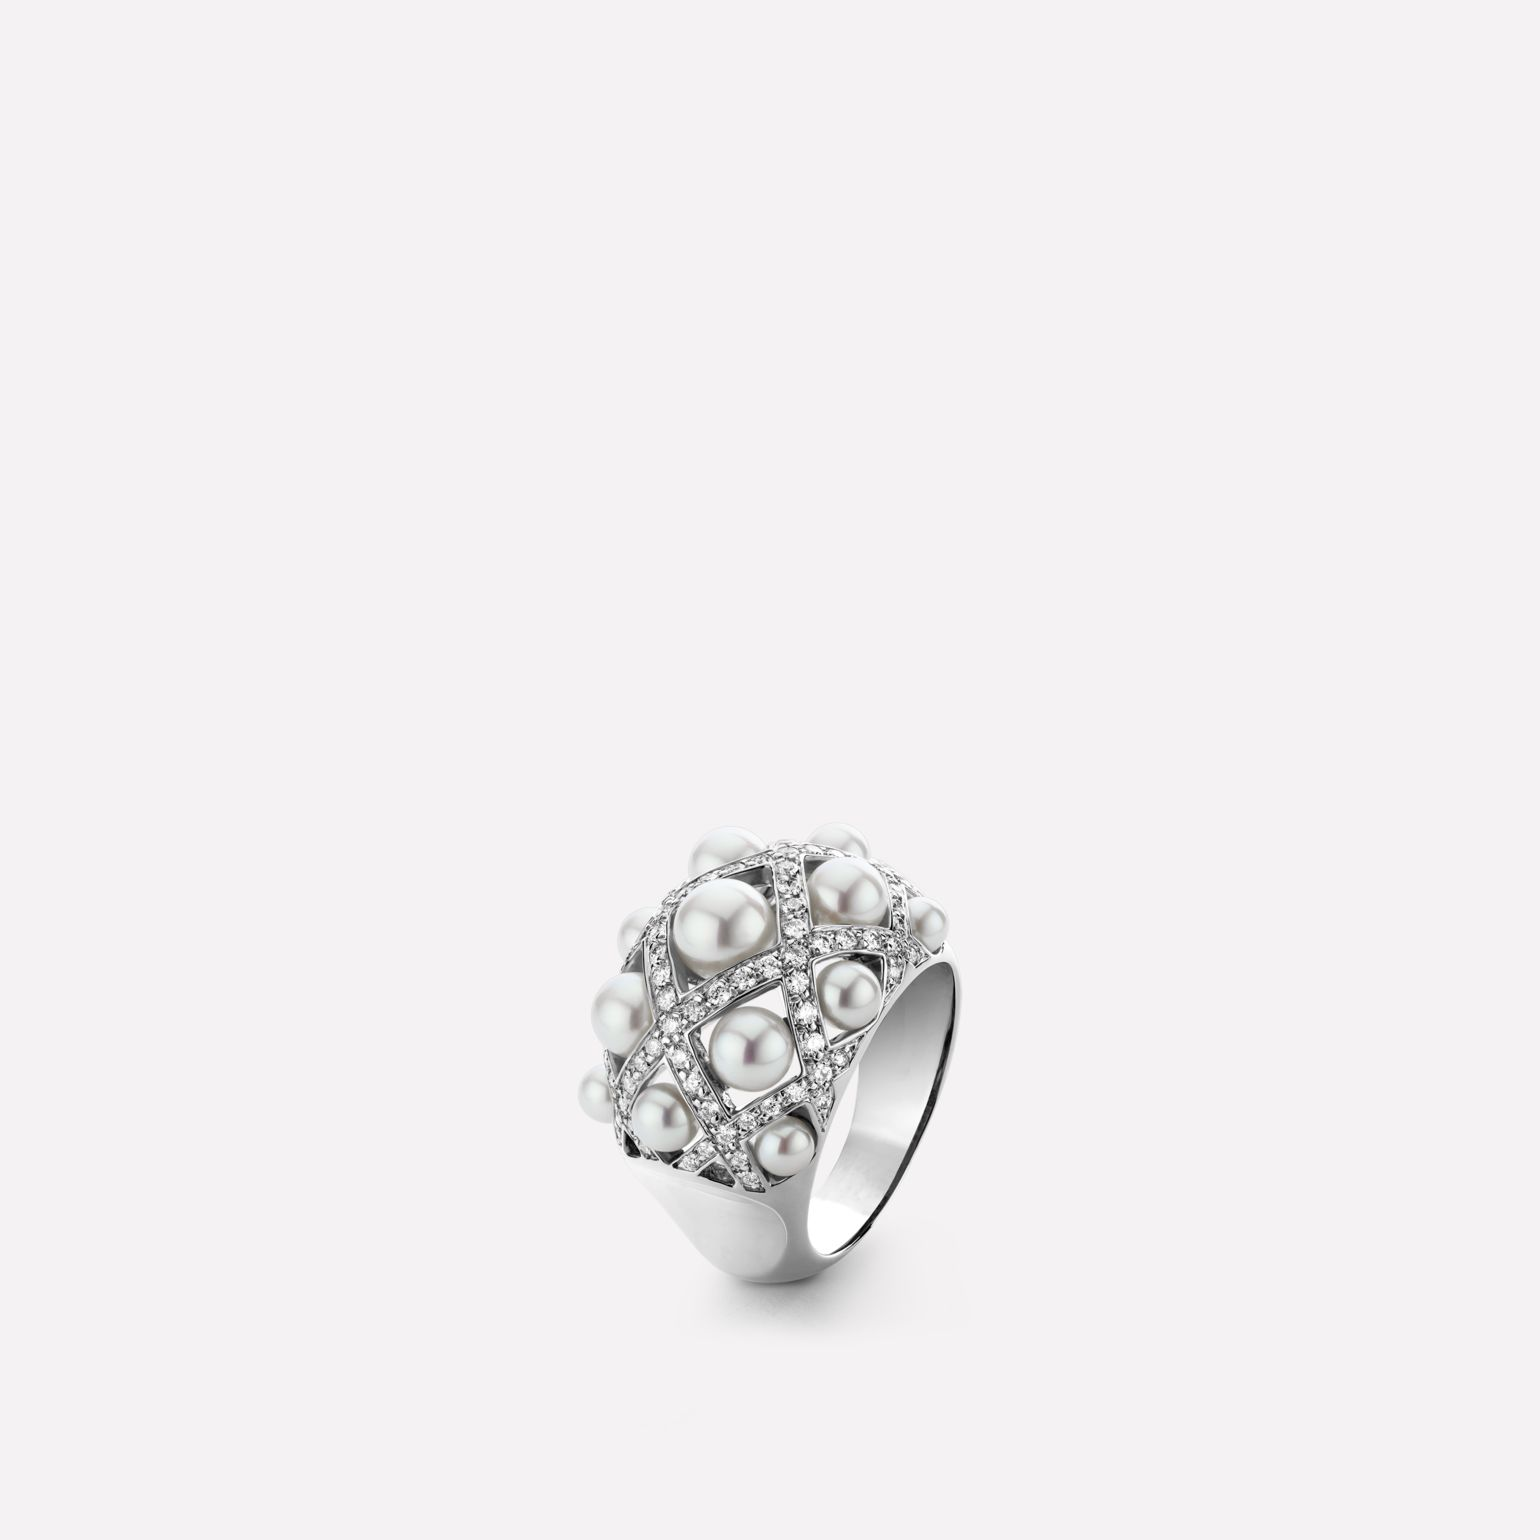 Perles Matelassé ring Medium version, 18K white gold, diamonds, cultured pearls